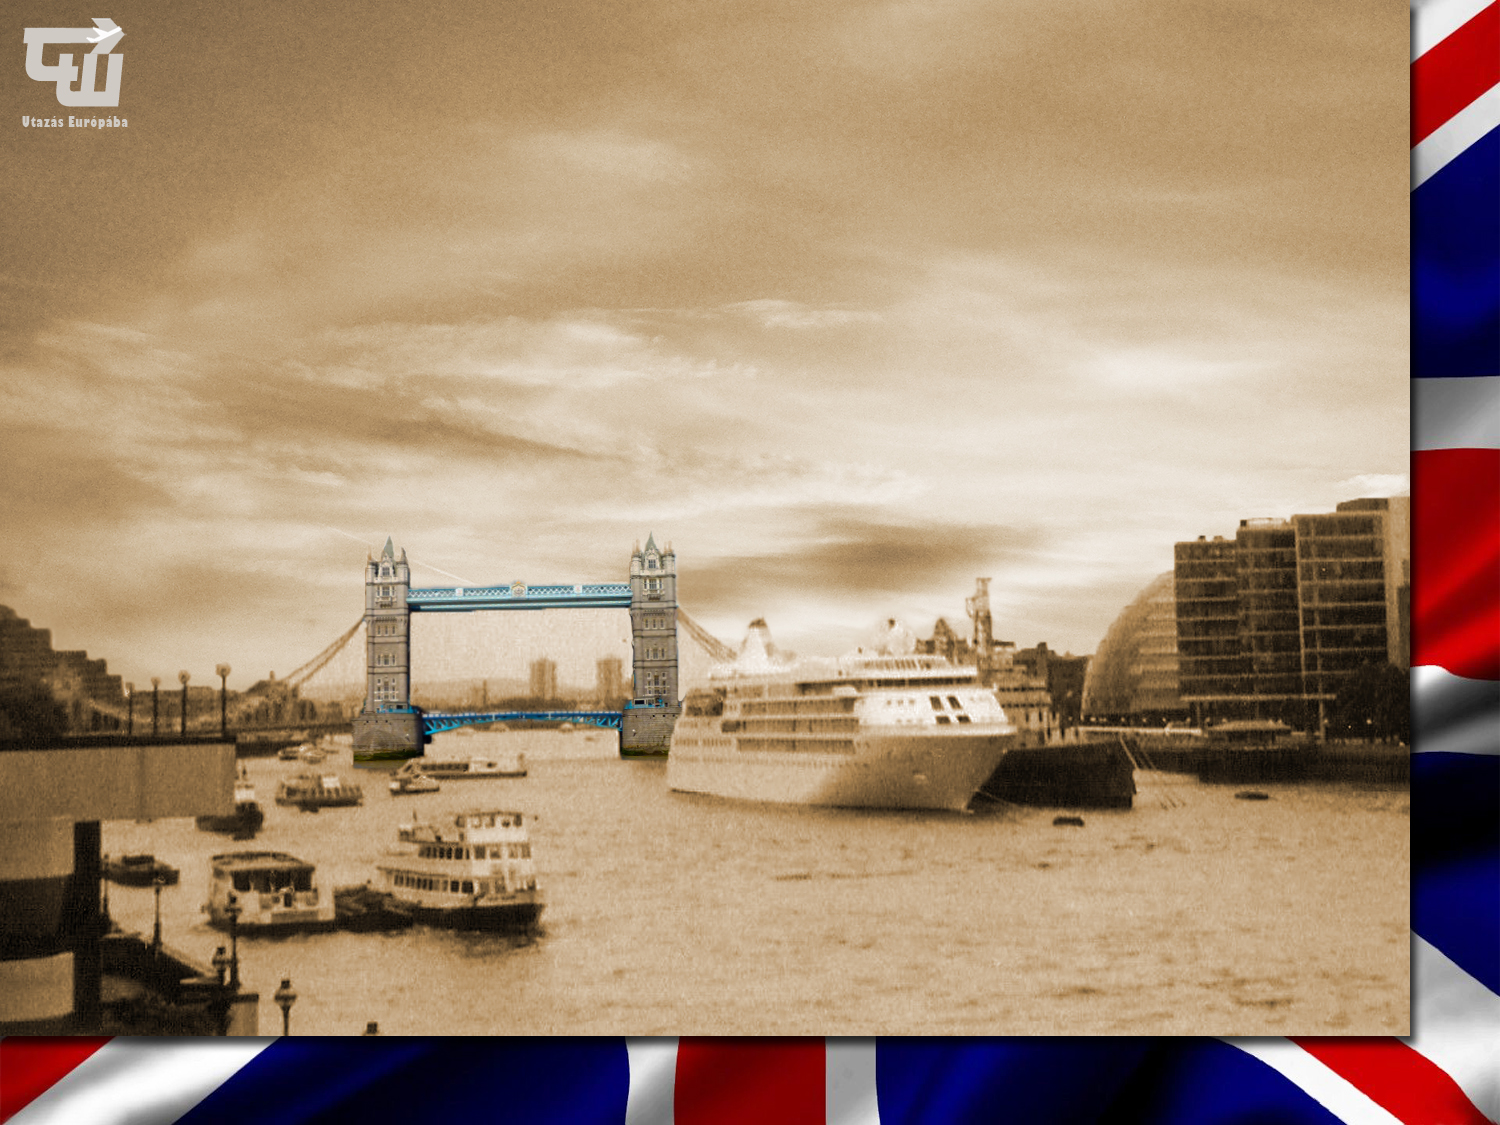 09_tower_bridge_temze_thames_london_nagy-britannia_anglia_great_britain_england_utazas_europaba.jpg